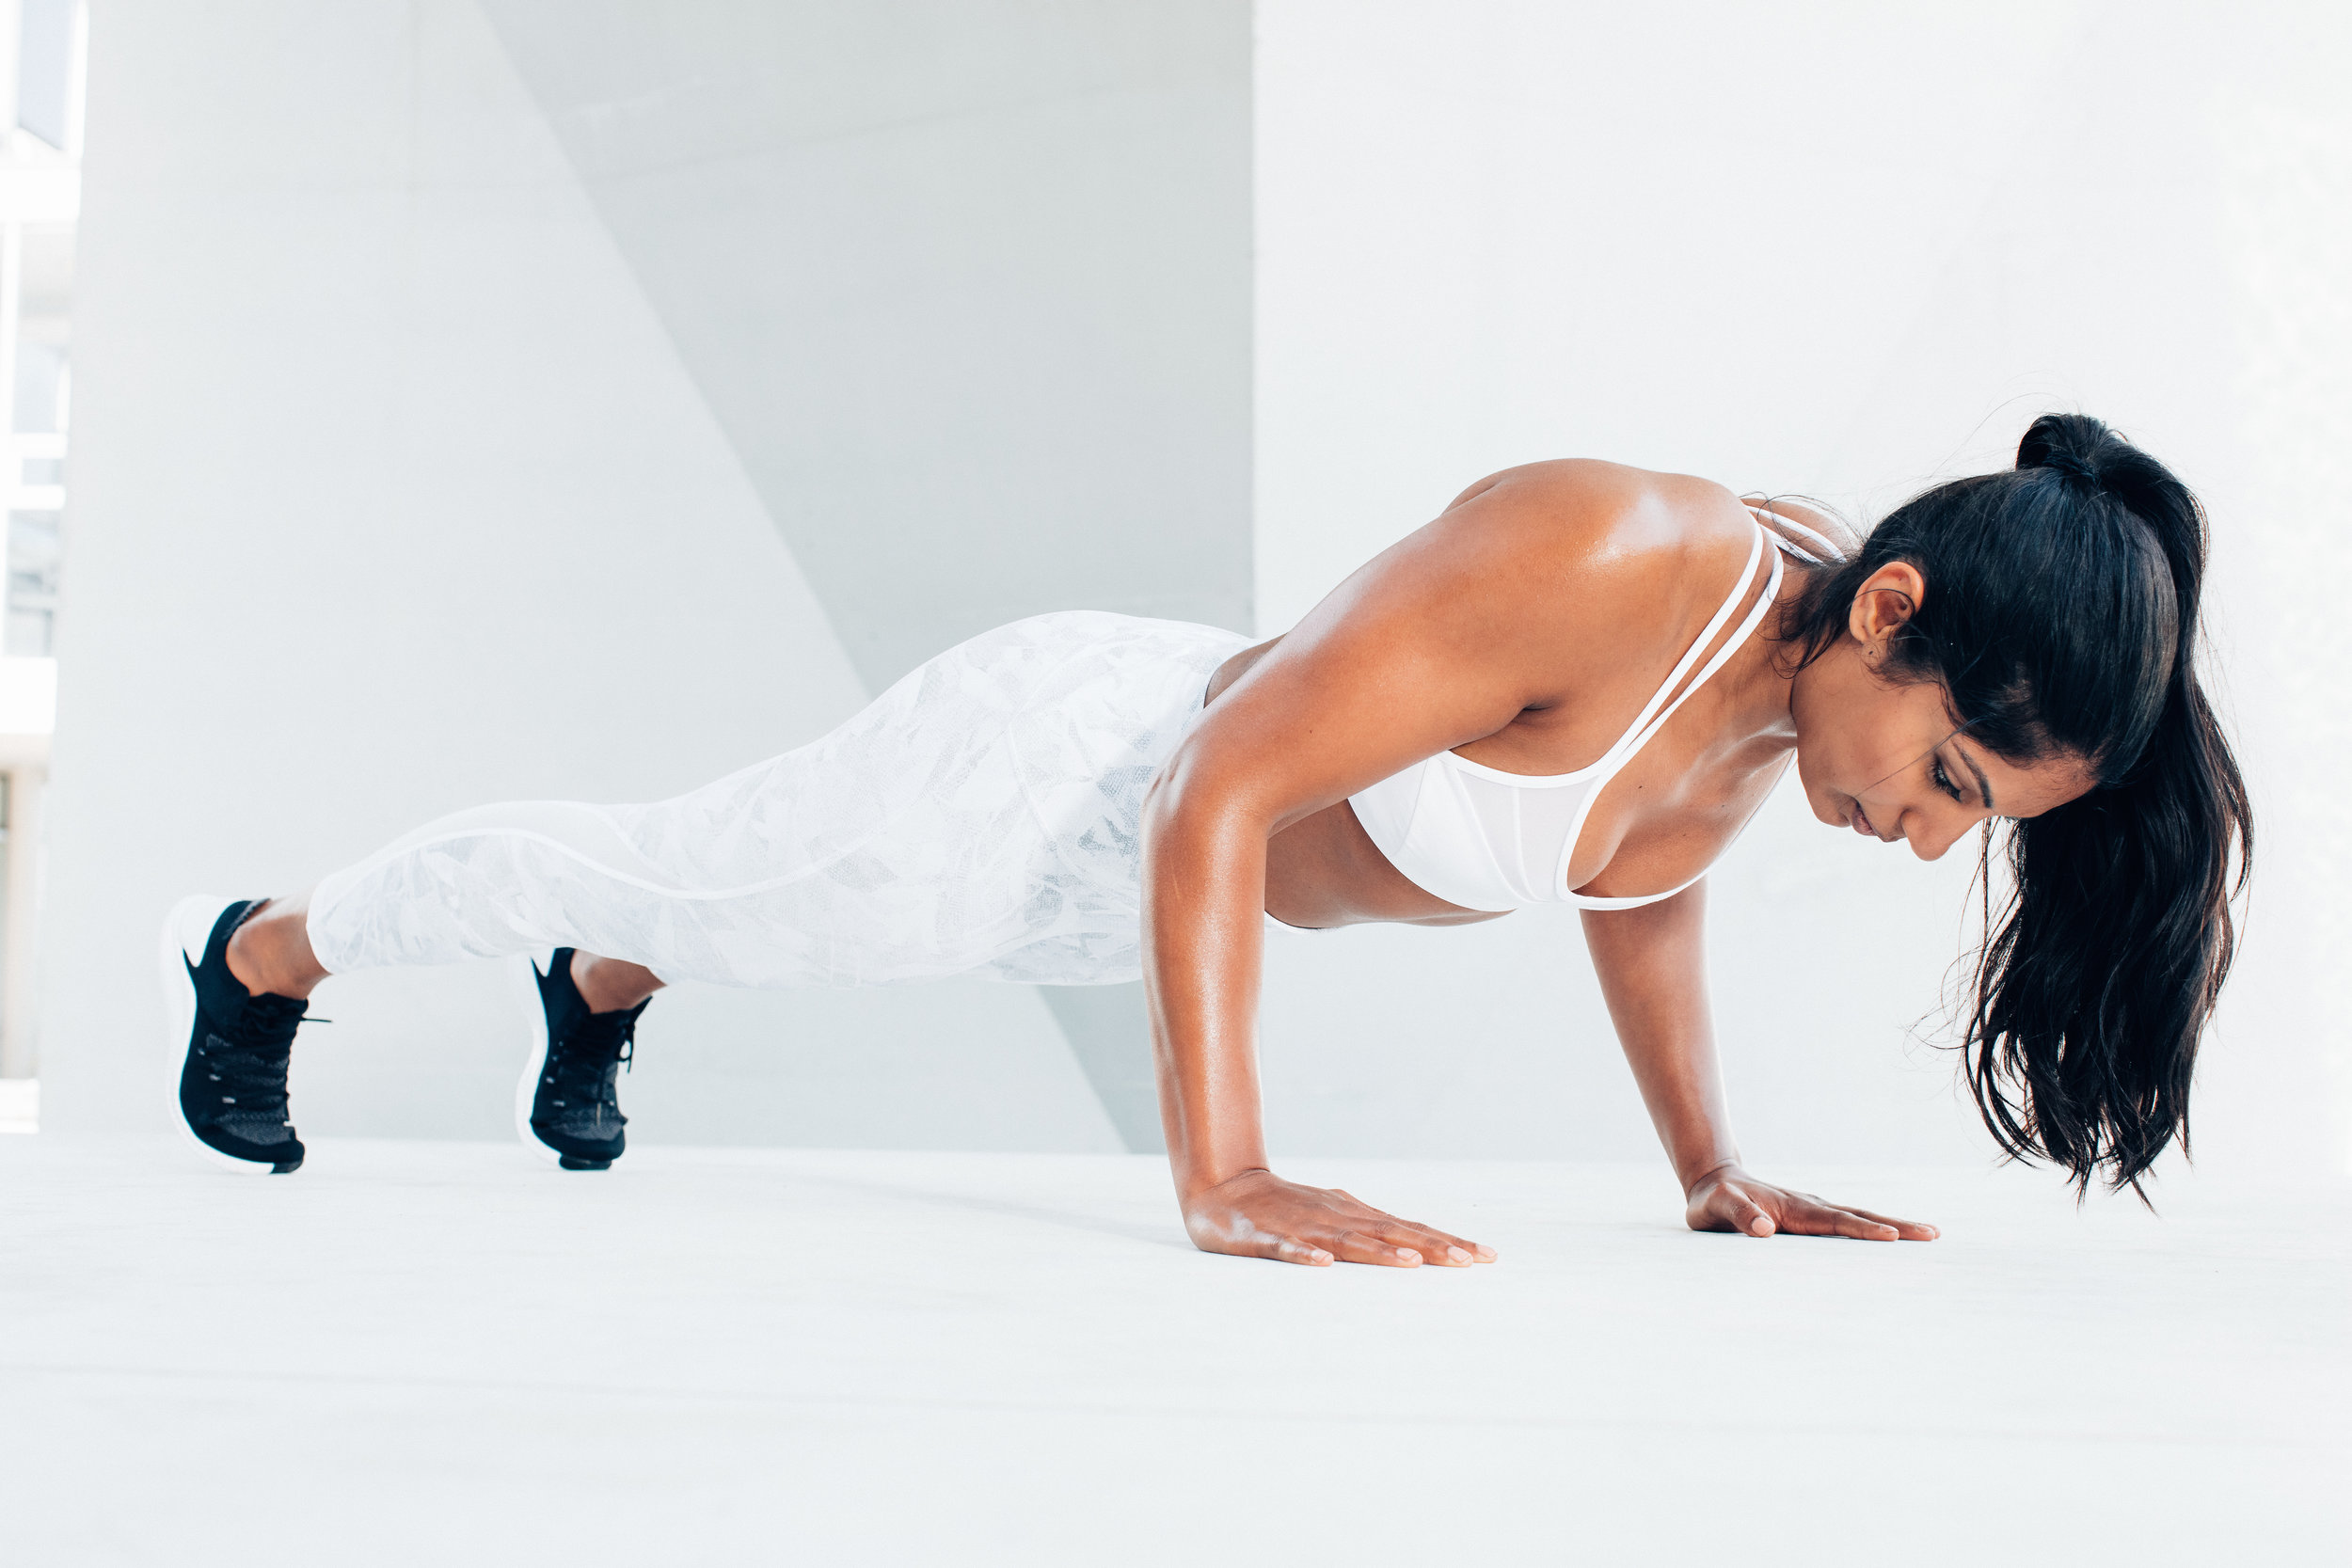 Fitness model doing push ups on a lifestyle photoshoot with commercial photographer Anick Violette.